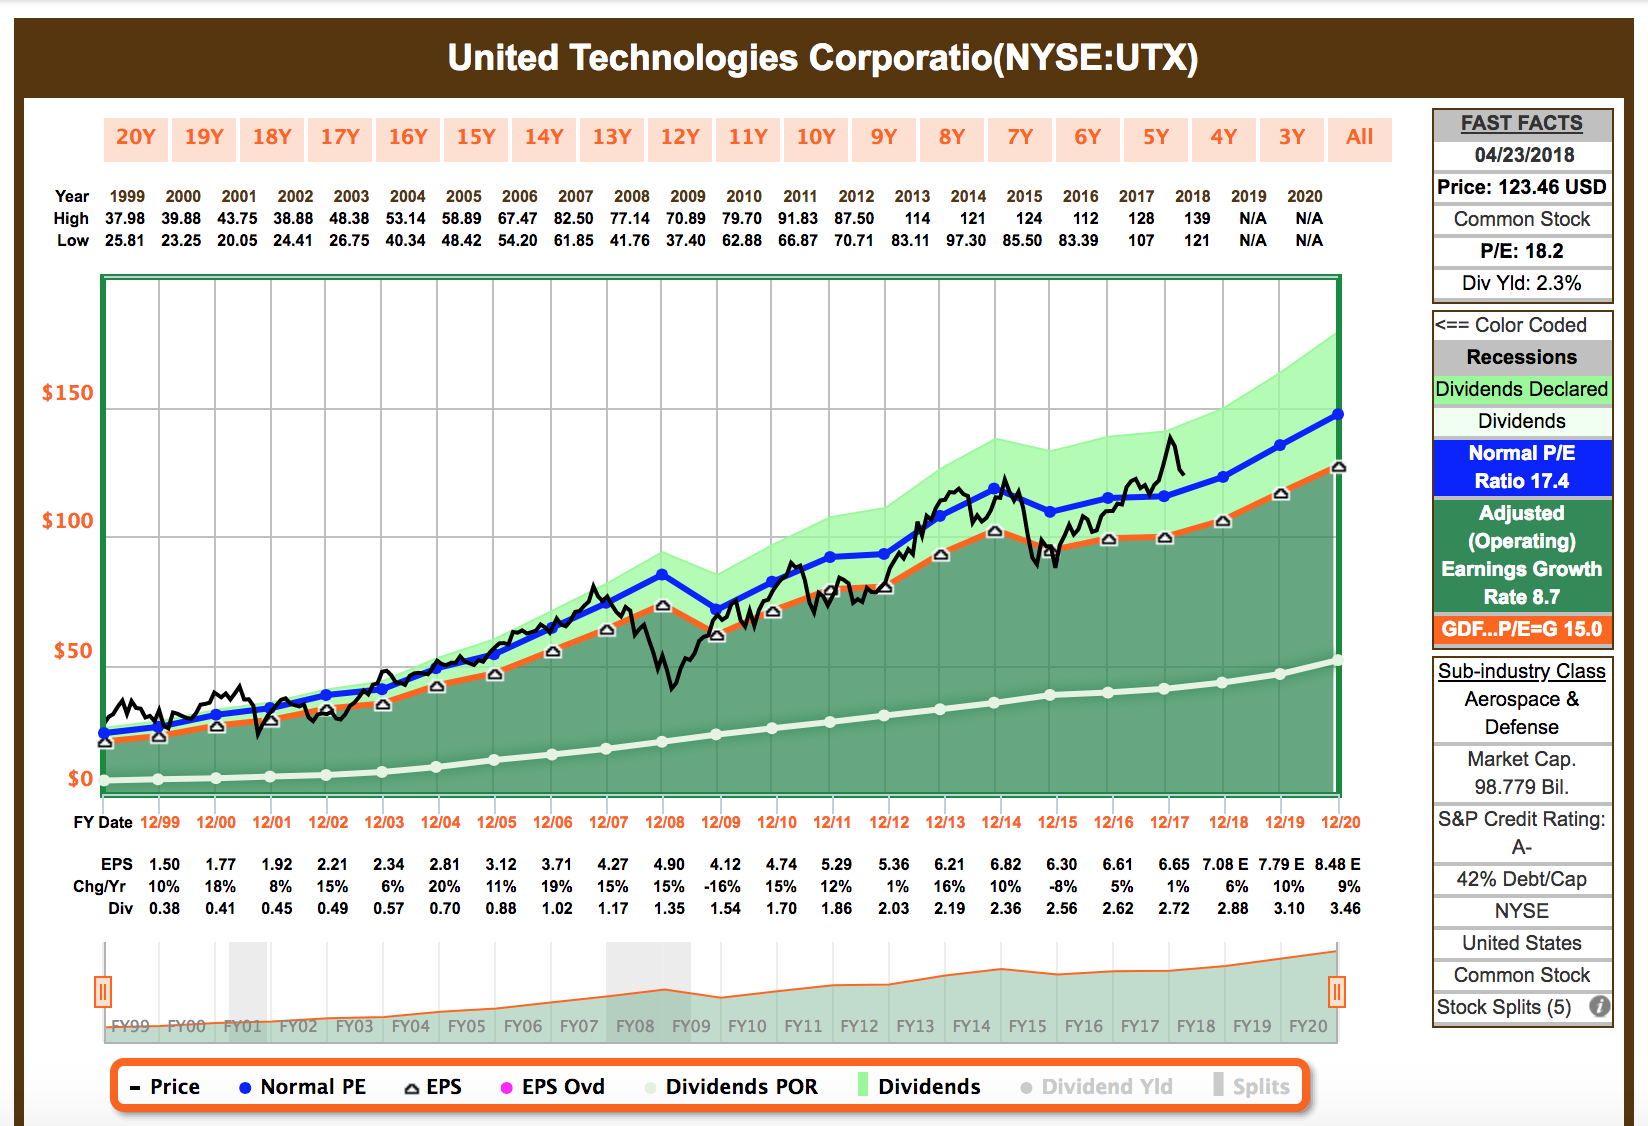 Utx Is Slated To Post Its Best Top Line Growth In Years So I M Not Sure If This A Fair Valuation Anything Think The Company Deserves